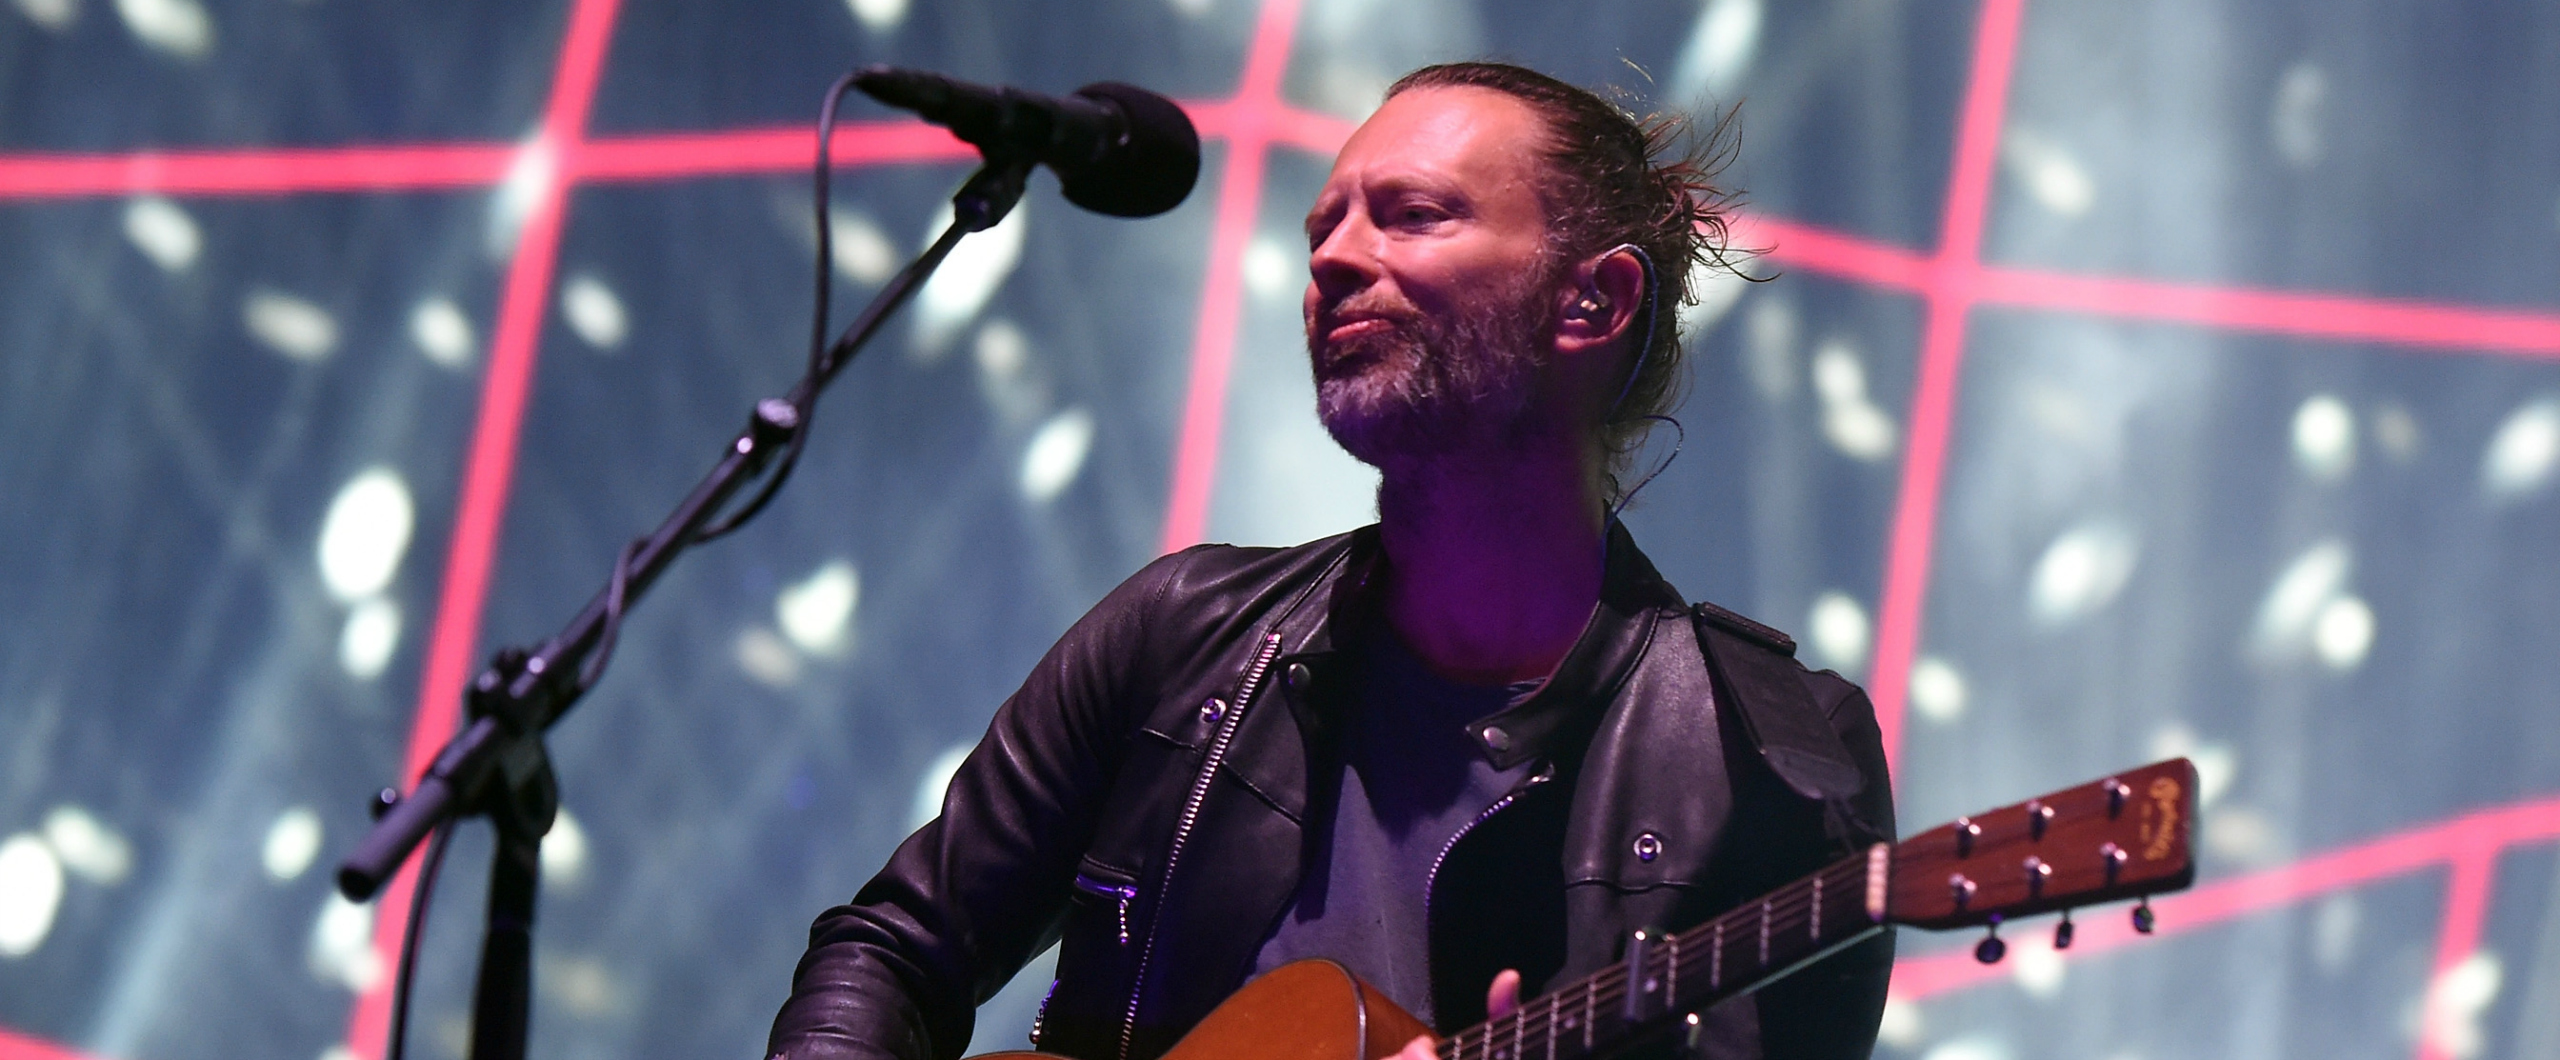 Thom Yorke performing at a concert